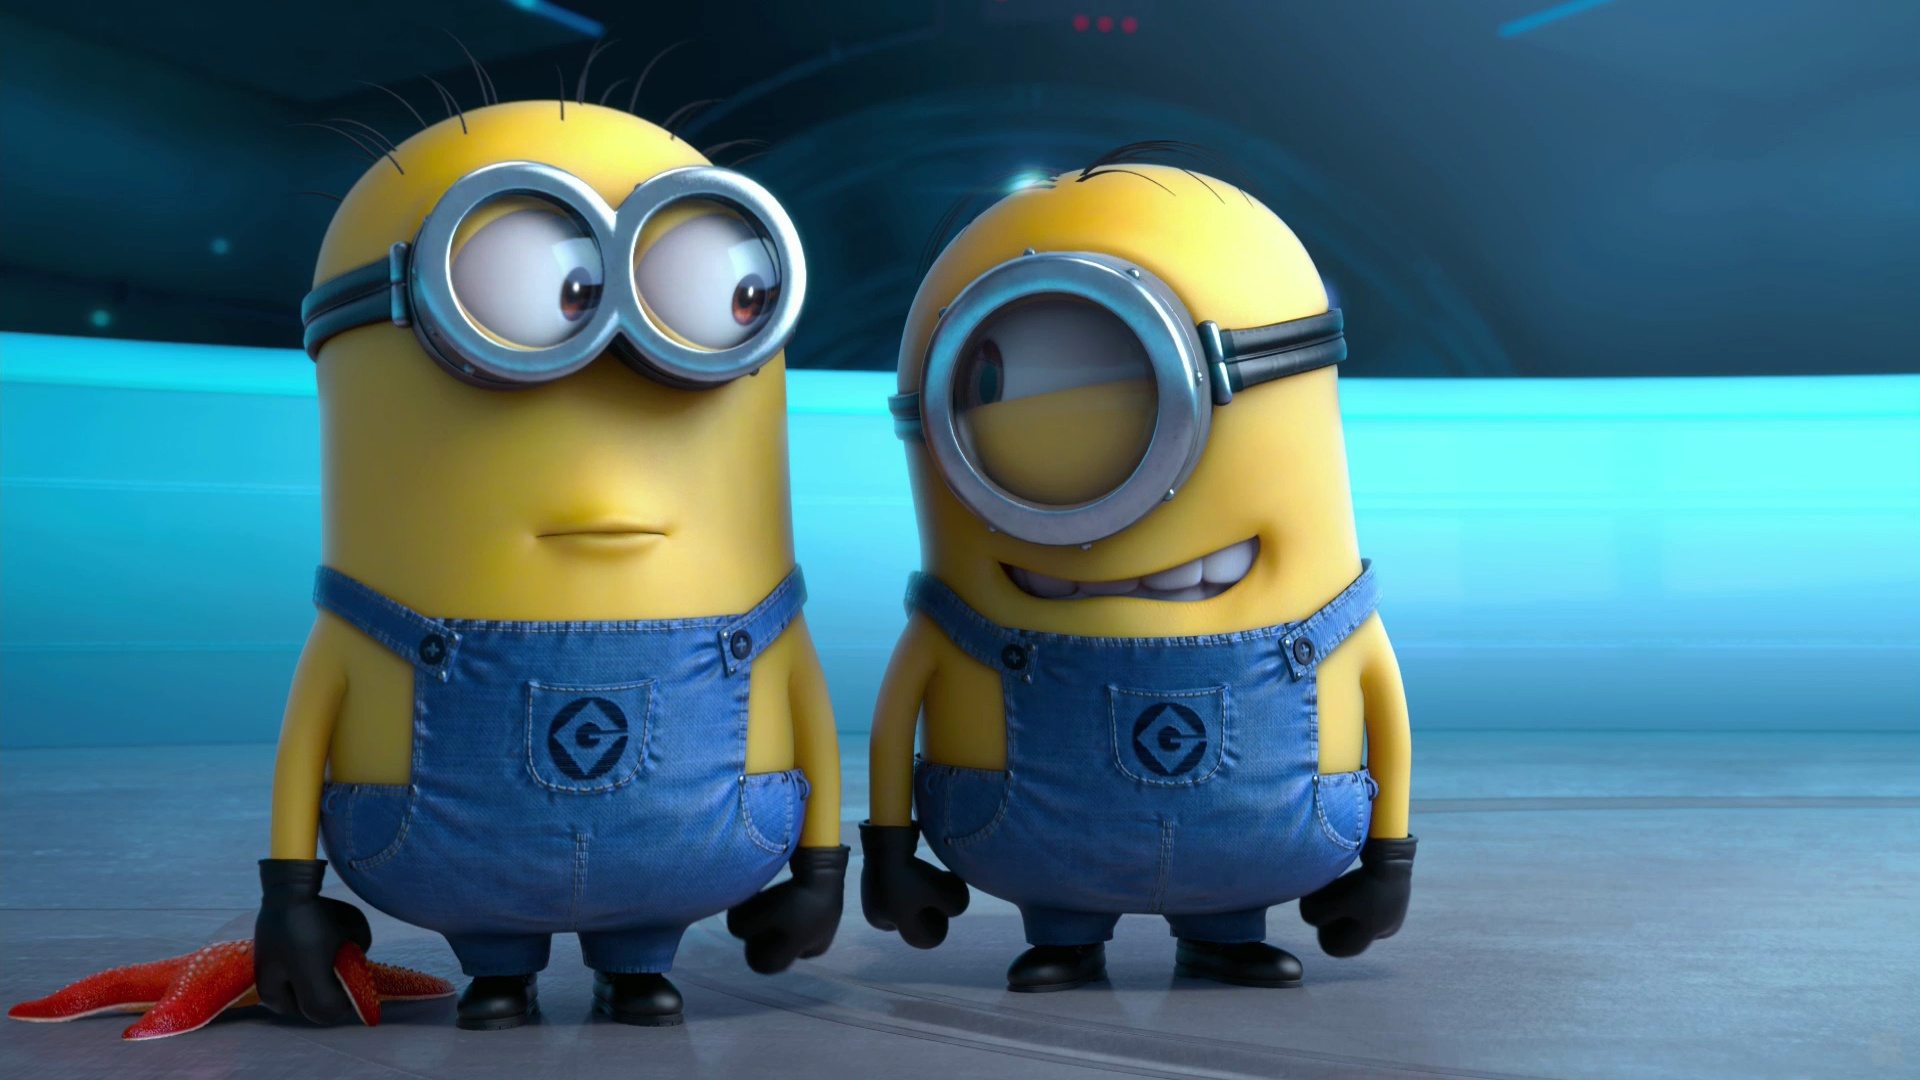 Whisper To Speak Minions - Whisper To Speak Minions